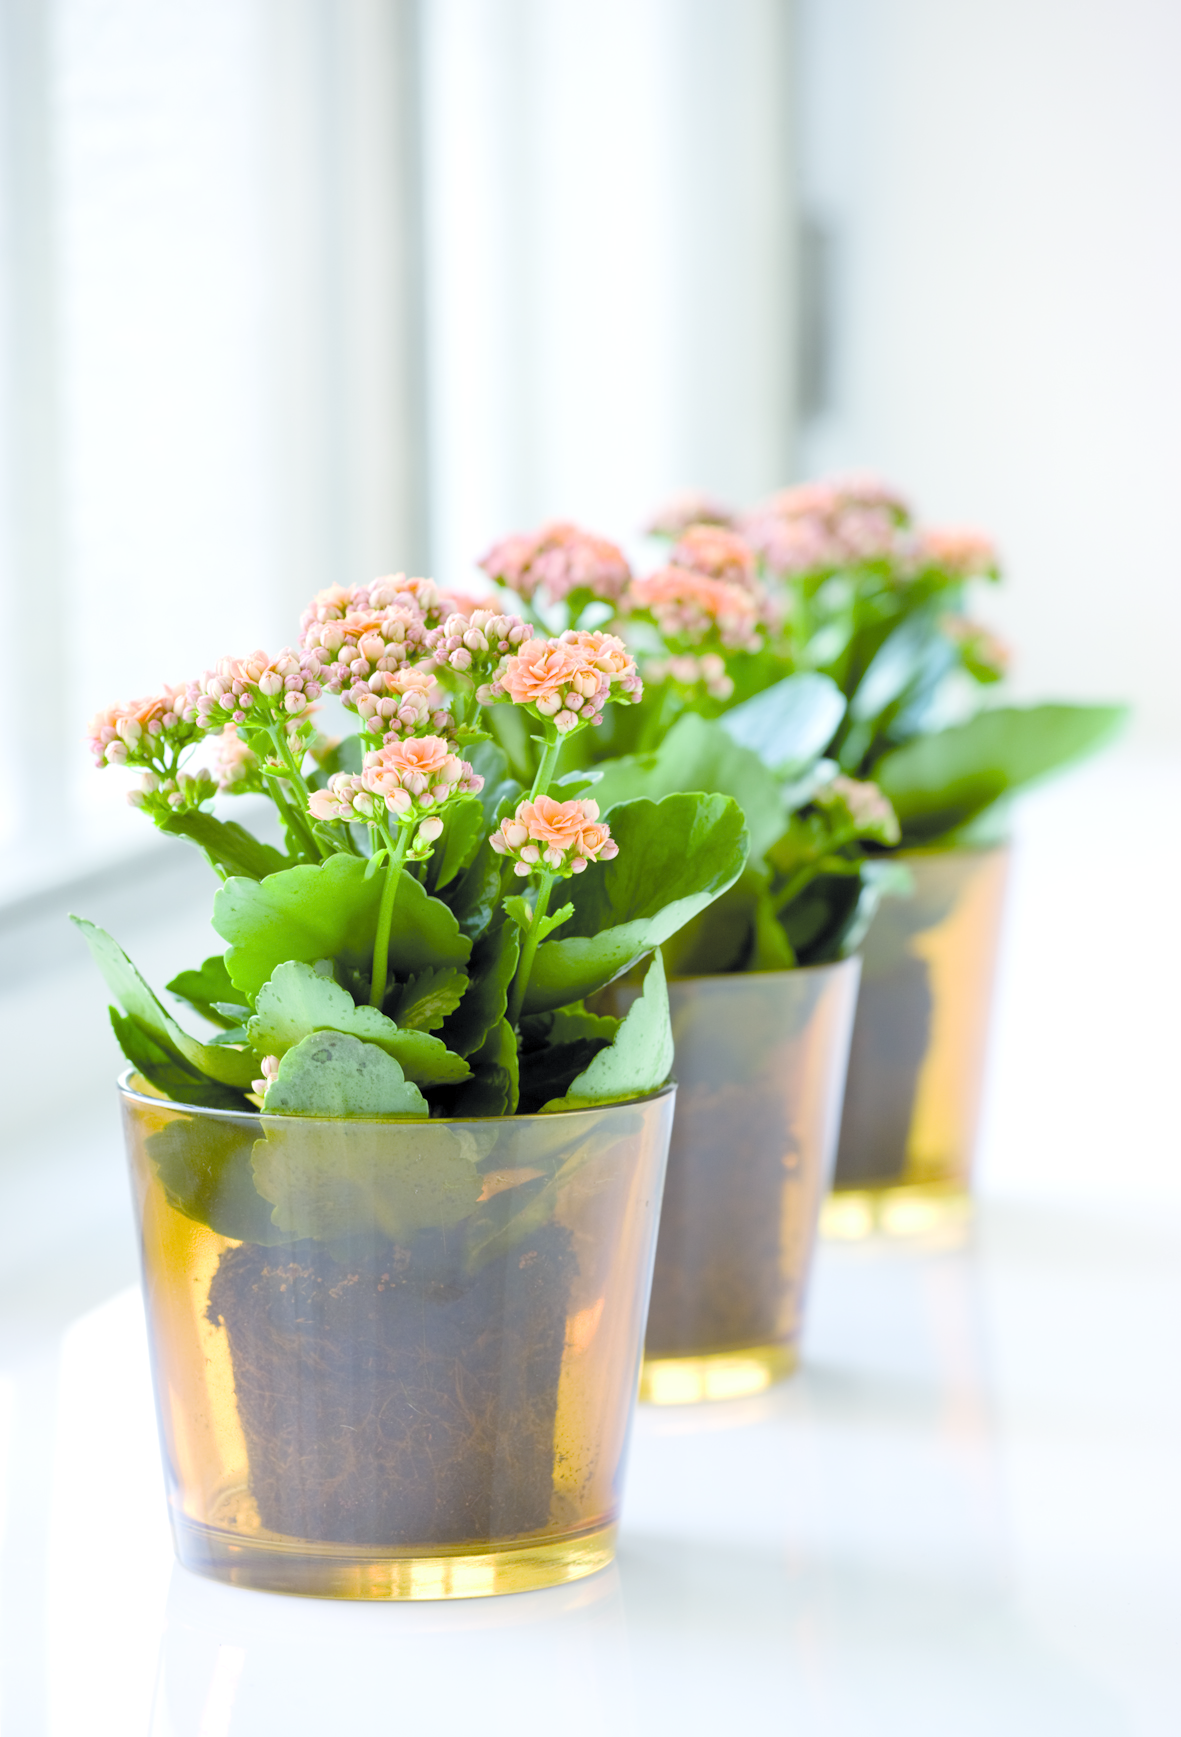 Floradania Dk Kalanchoe Is The Number One Plant In Denmark